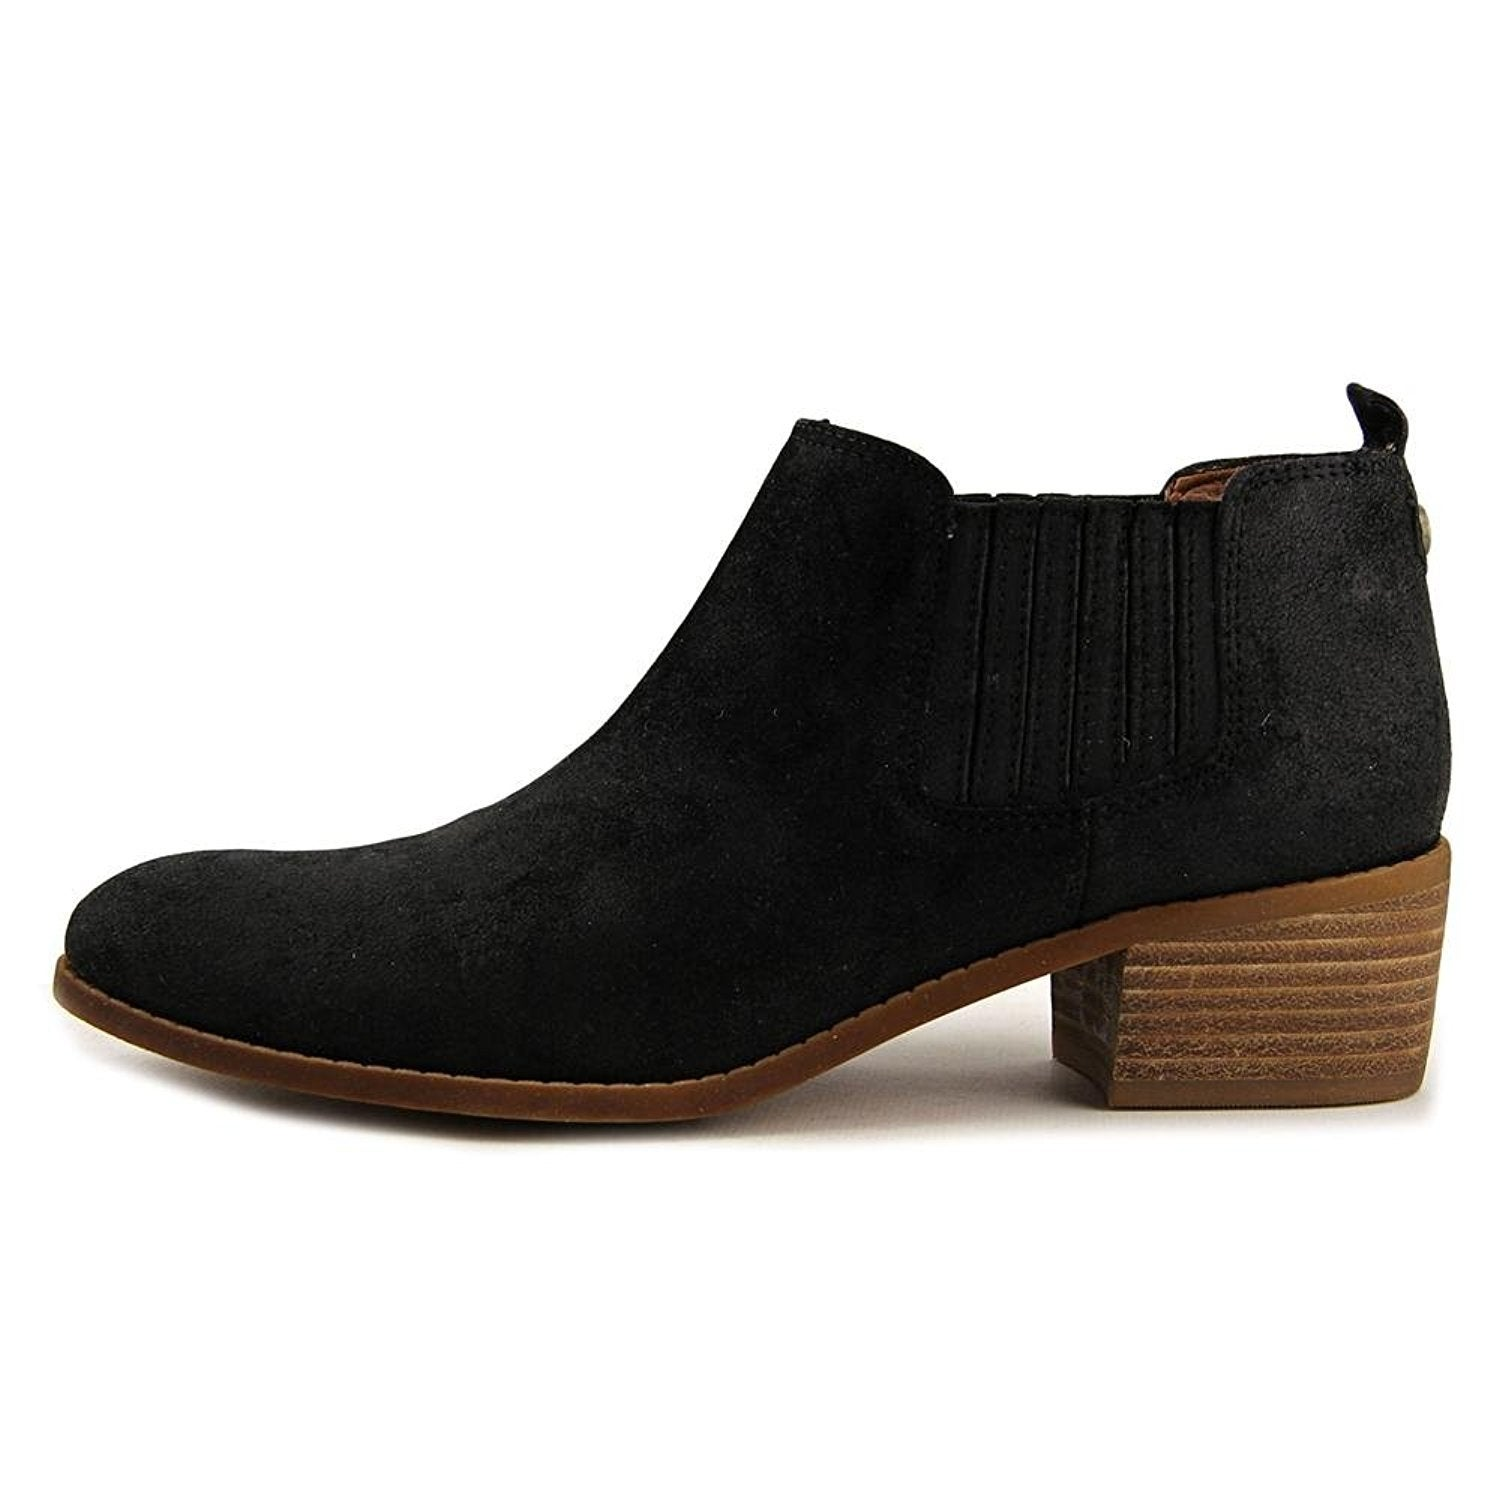 e0cc1b9e89c87d Shop Tommy Hilfiger Womens ripley Almond Toe Ankle Fashion Boots - Free  Shipping On Orders Over  45 - Overstock - 17041914